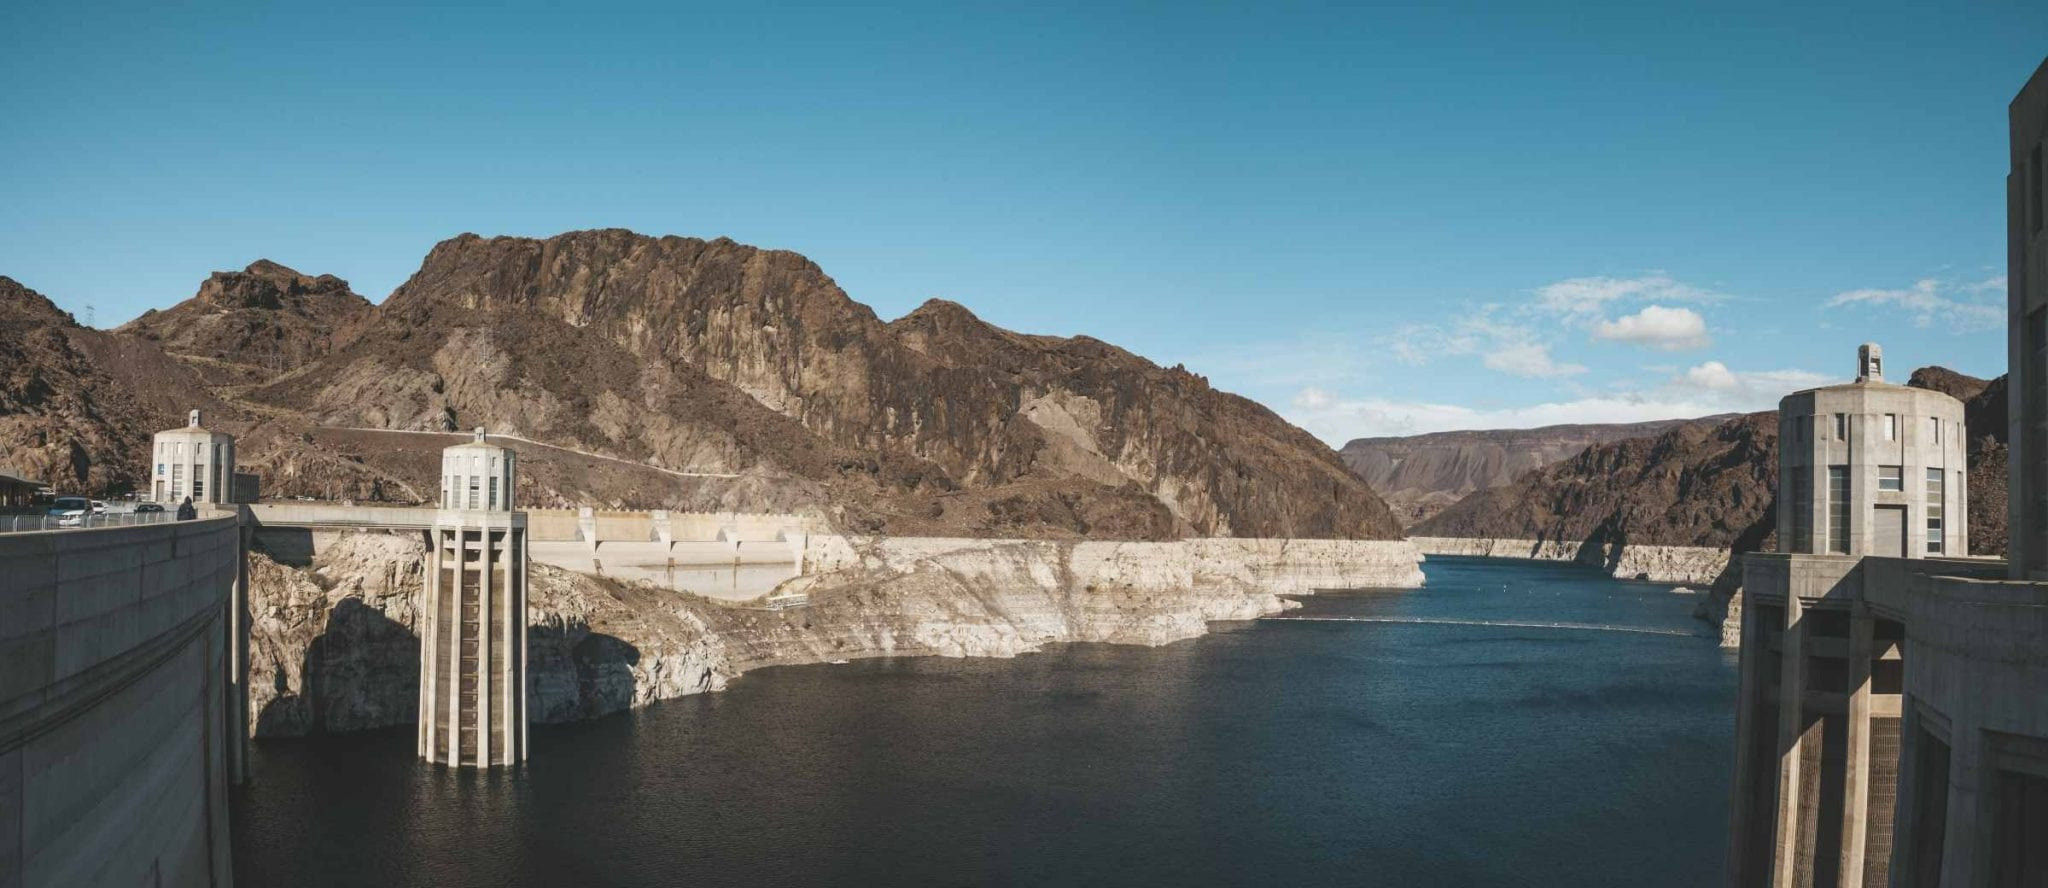 Corporations funding the Business for Water Stewardship and Environmental Defense Fund have teamed up with Arizona to conserve 150,000 acre-feet of water as part of the State's Drought Contingency Plan. This effort follows historic low levels of water at Lake Mead and Hoover Dam.